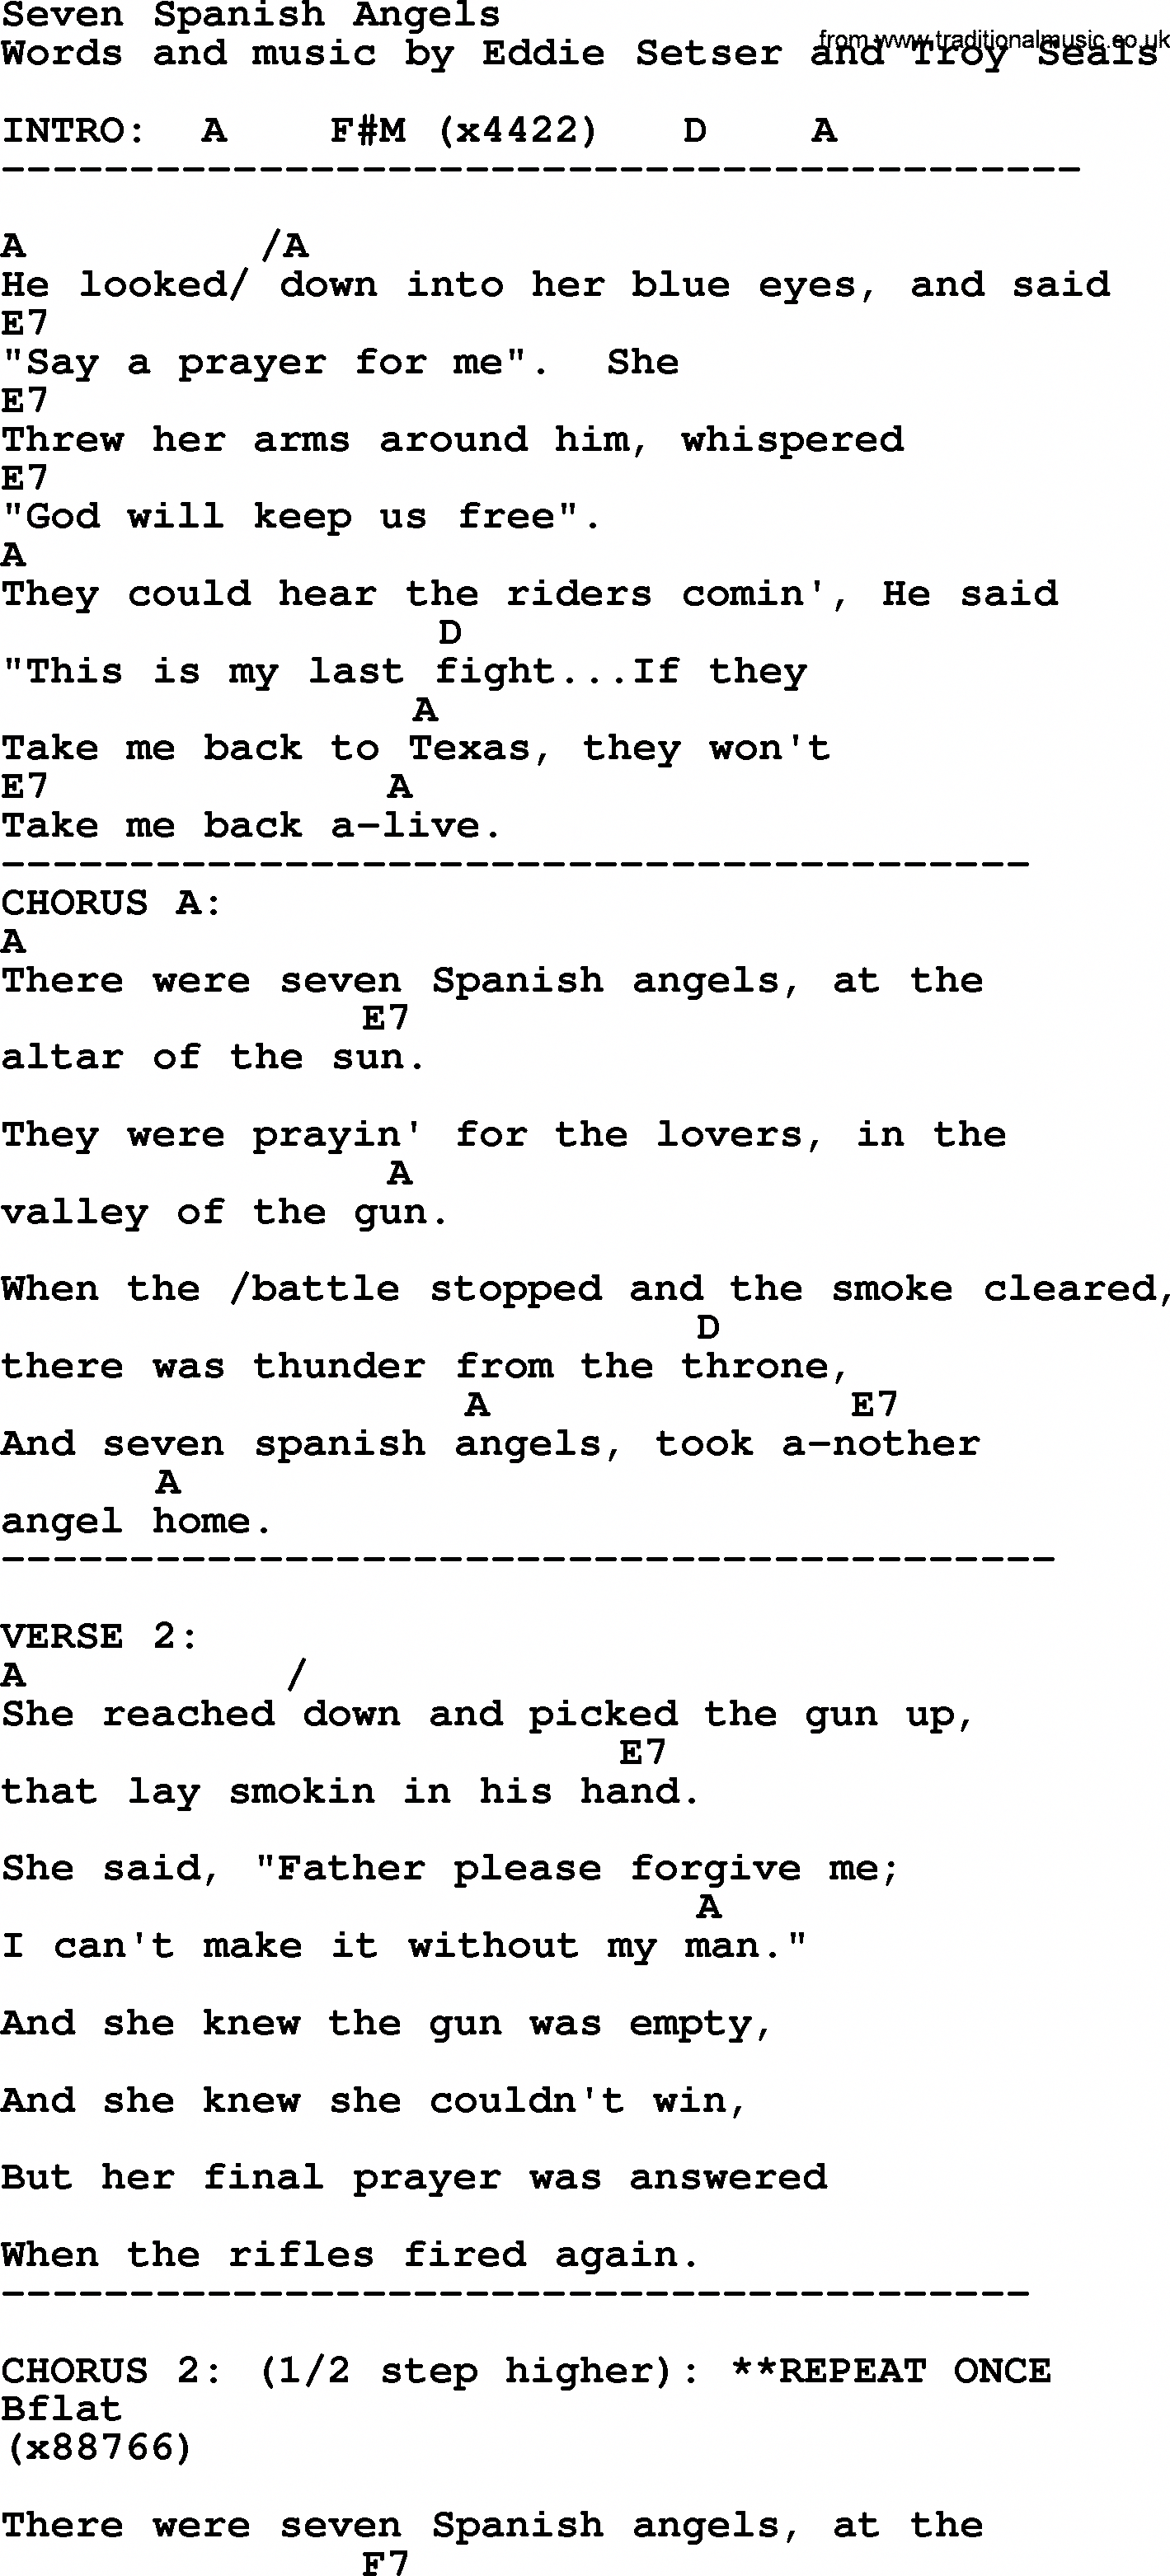 Willie Nelson song Seven Spanish Angels, lyrics and chords ...